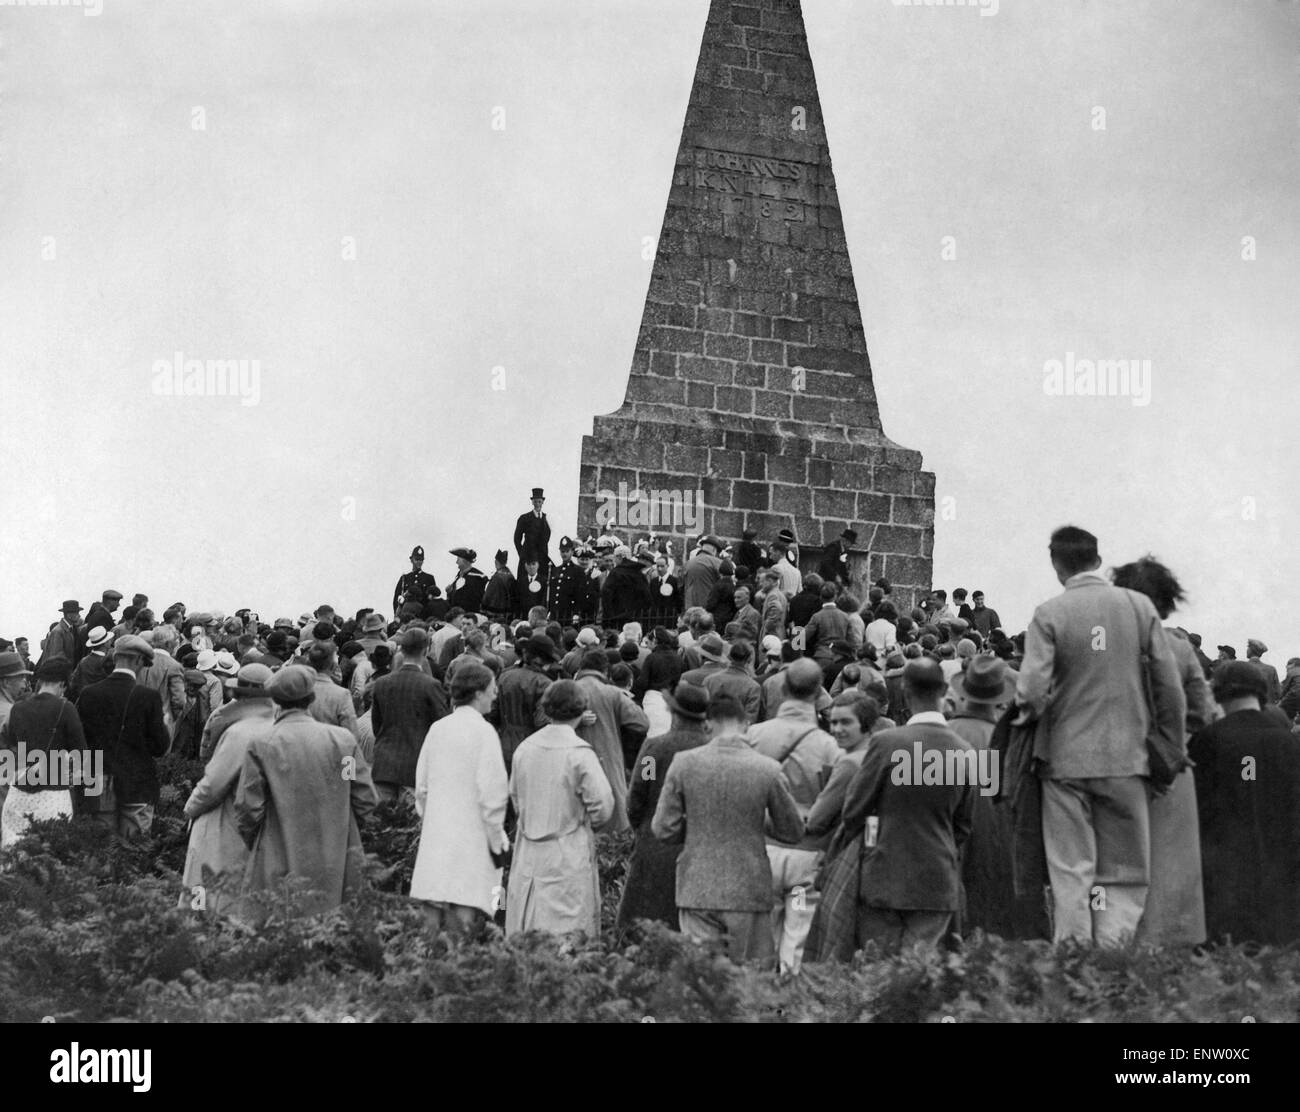 A crowd of people from nearby St Ives gather around the monument to John Knill former Mayor of St Ives. The monument - Stock Image